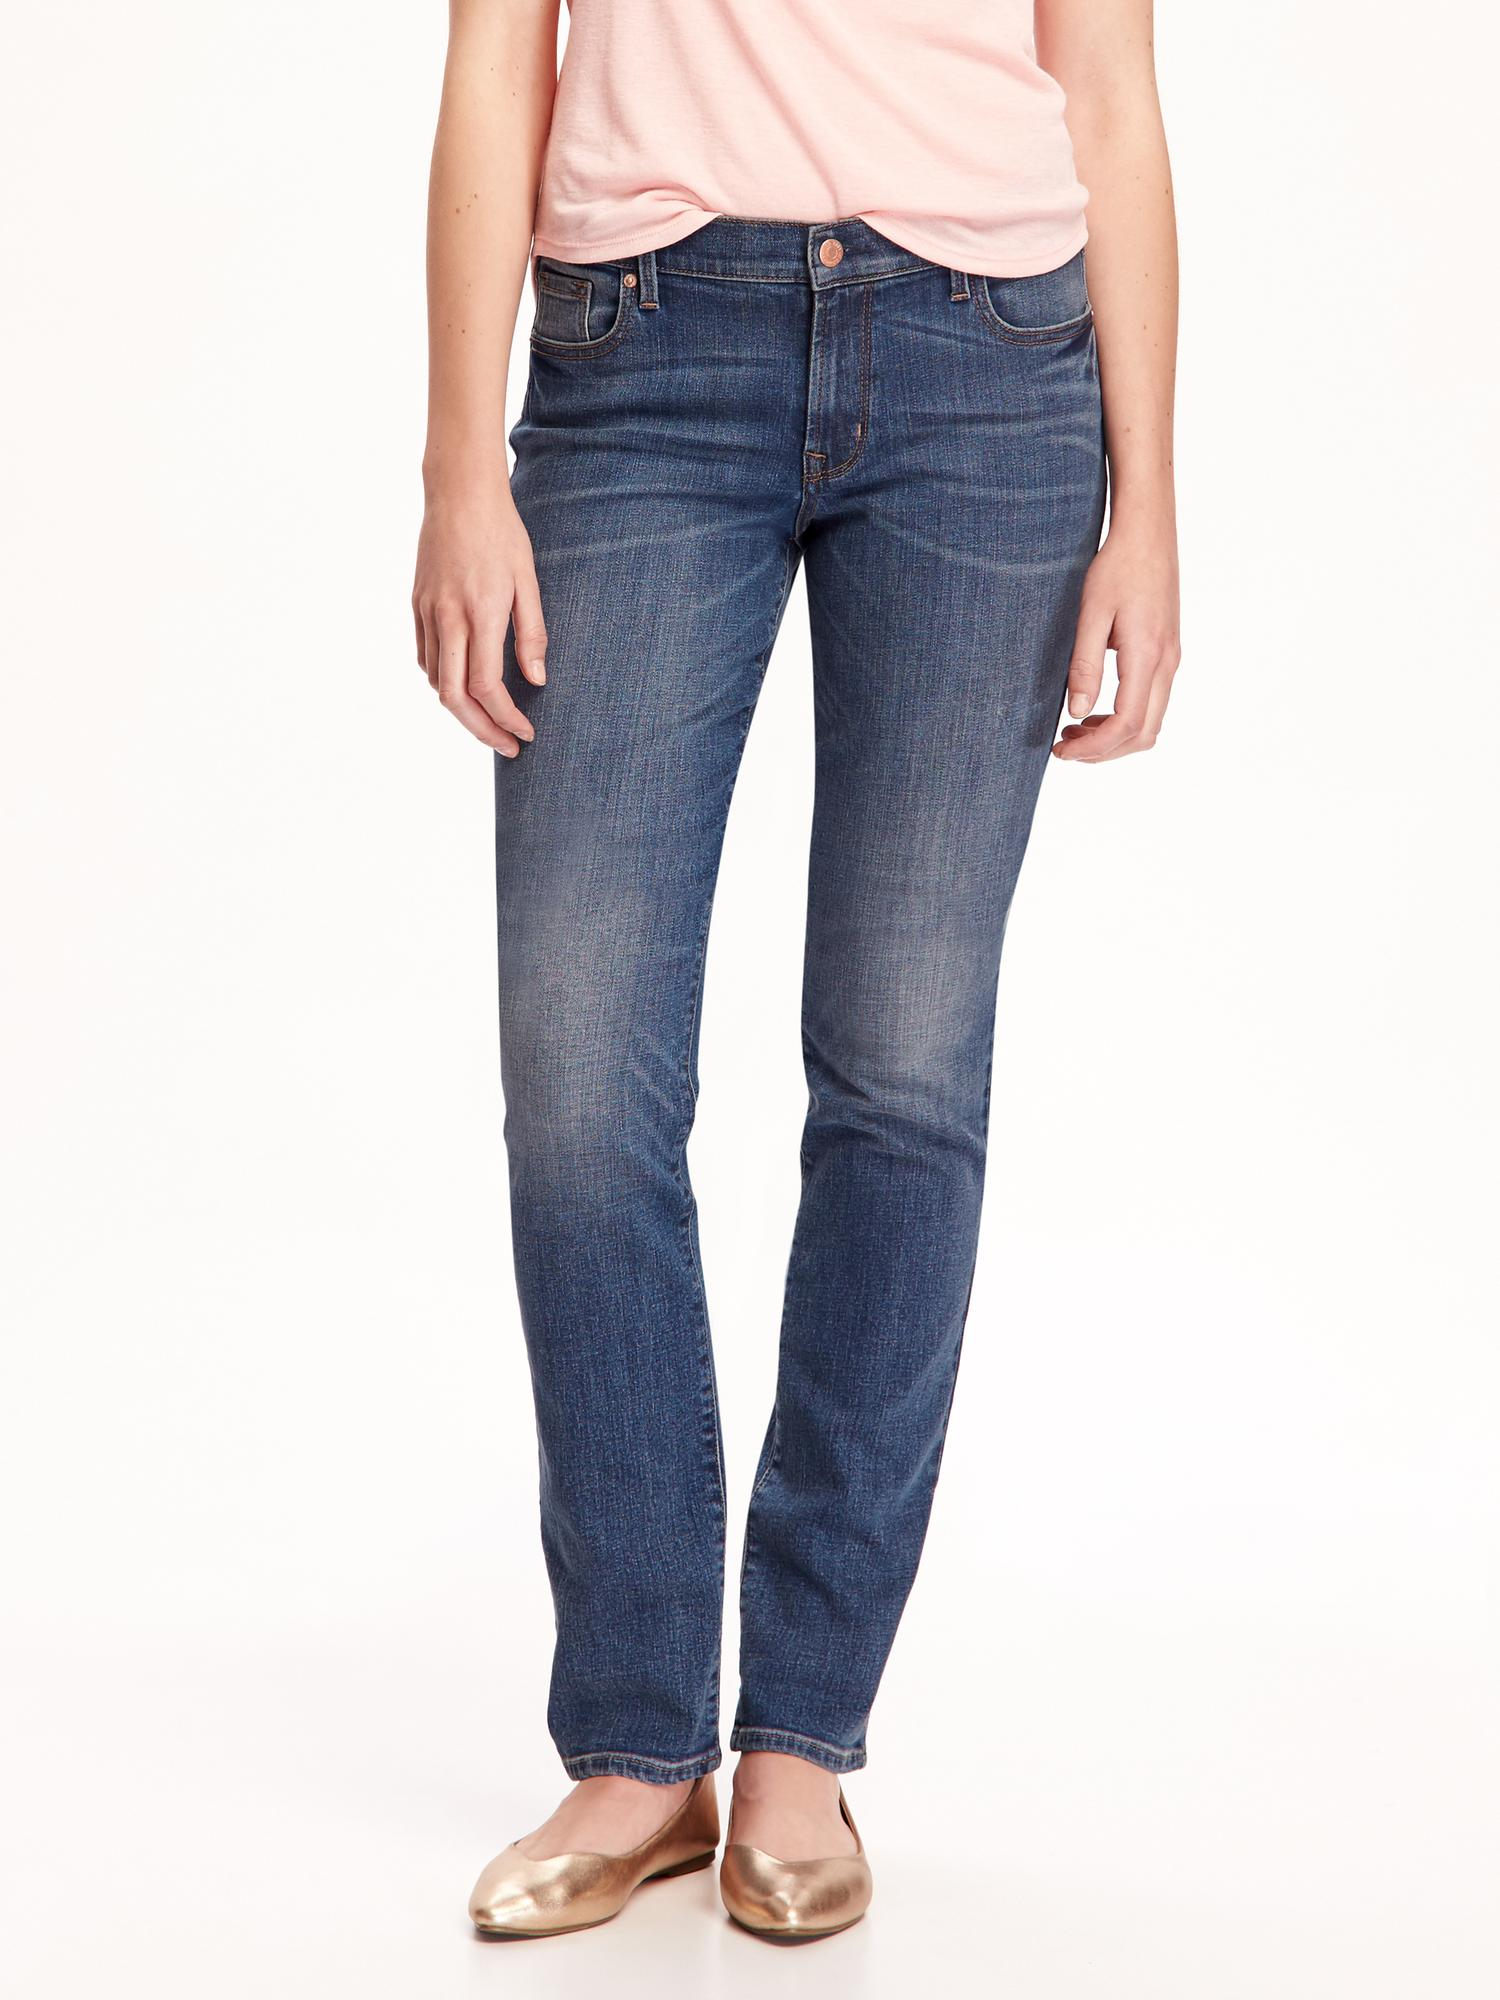 Old Navy Original Straight Jeans for Women